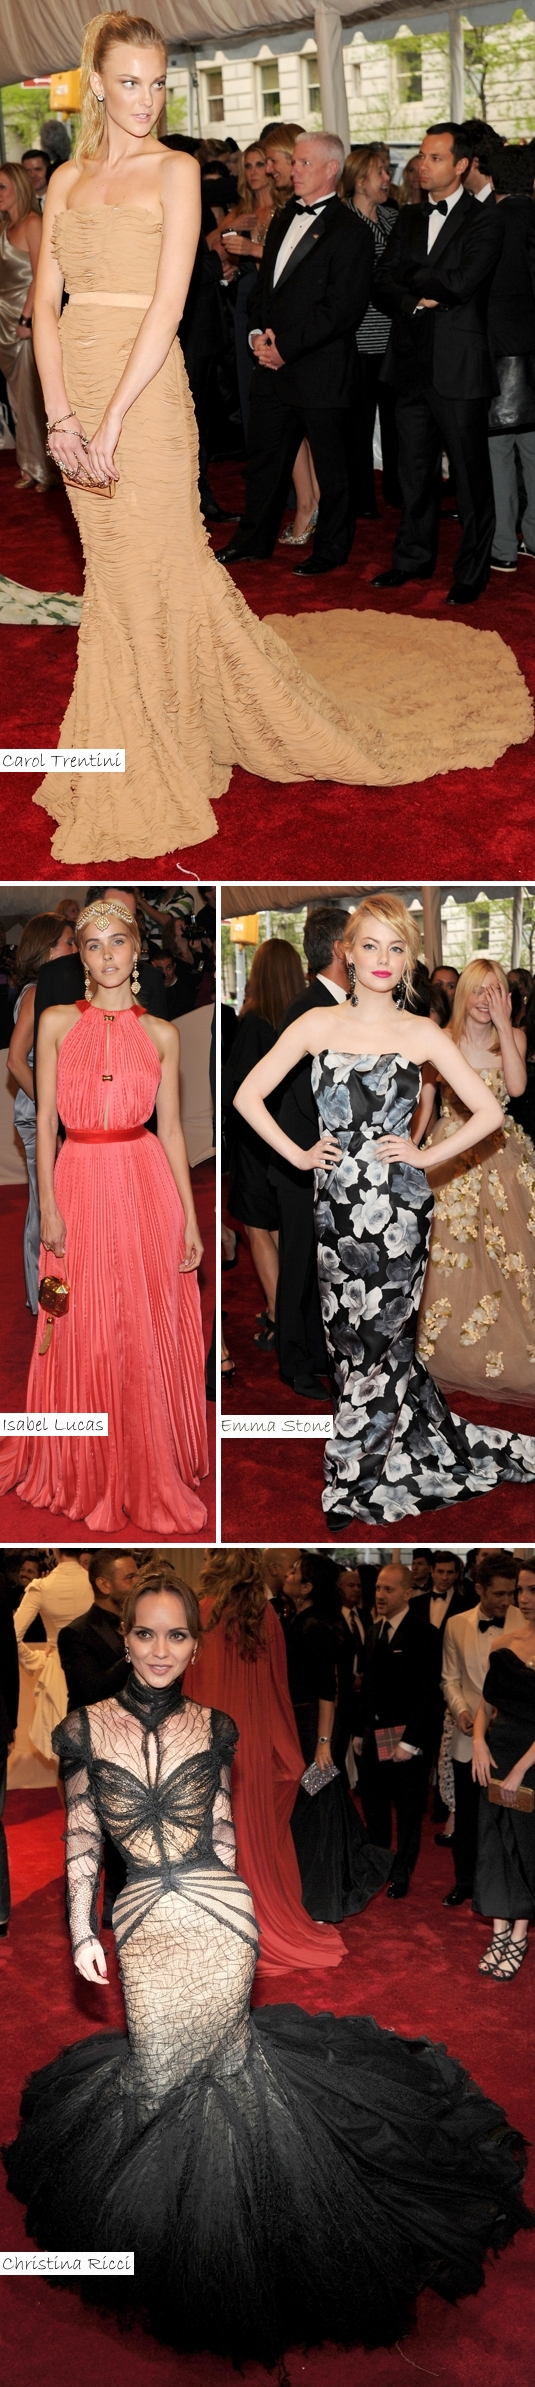 As Mais Bem Vestidas Met Ball 2011e Vote: As Mais Bem Vestidas do Met Ball 2011